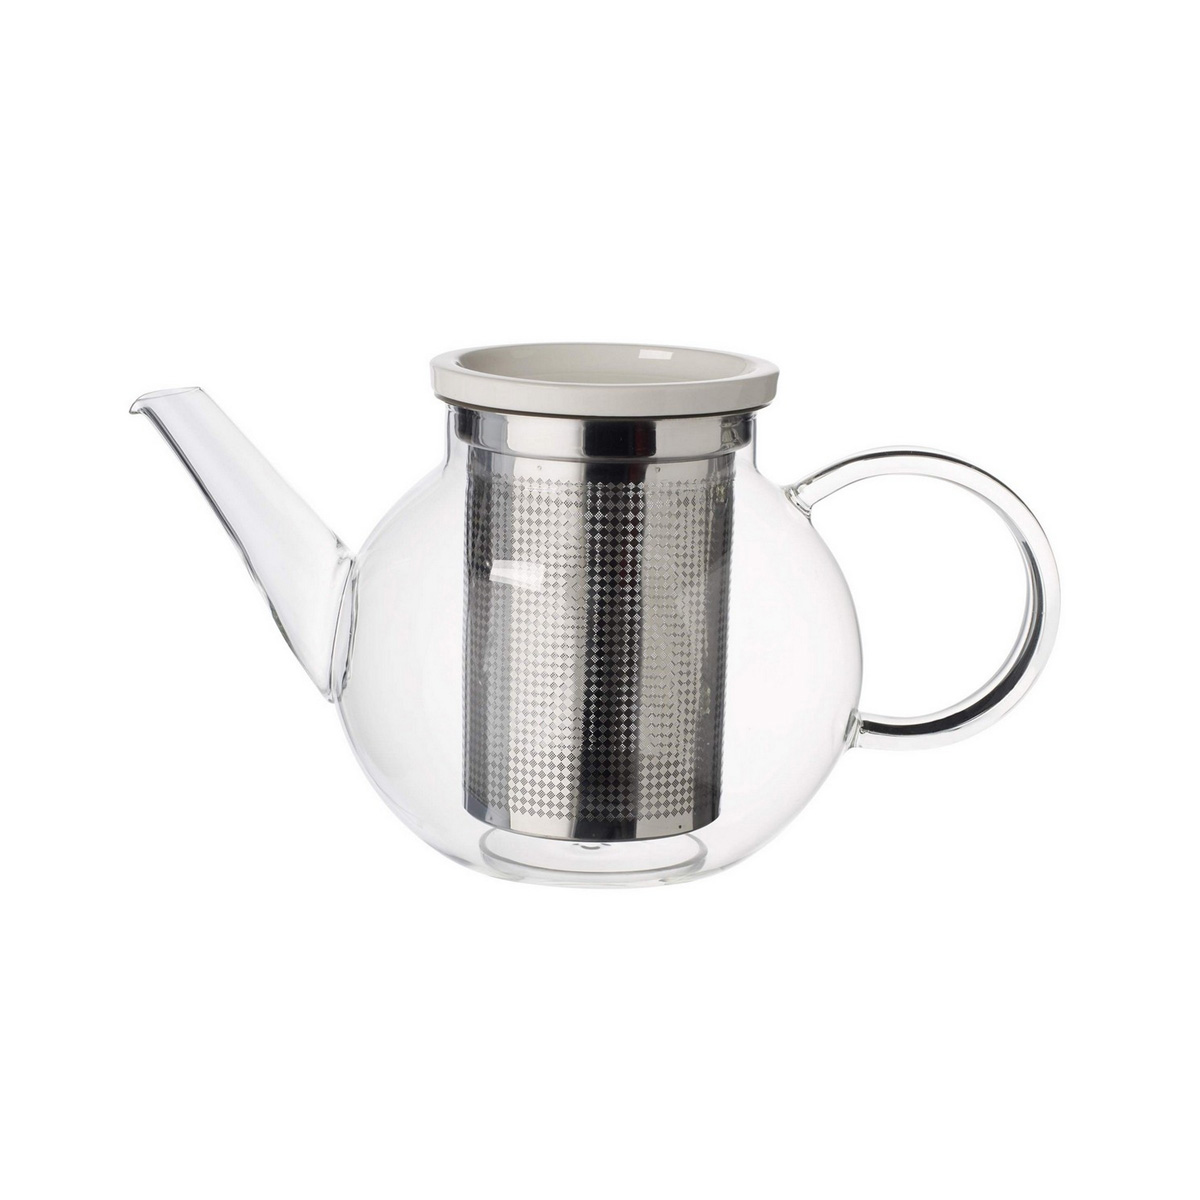 Villeroy and Boch Artesano Hot Beverages Teapot with Strainer Small